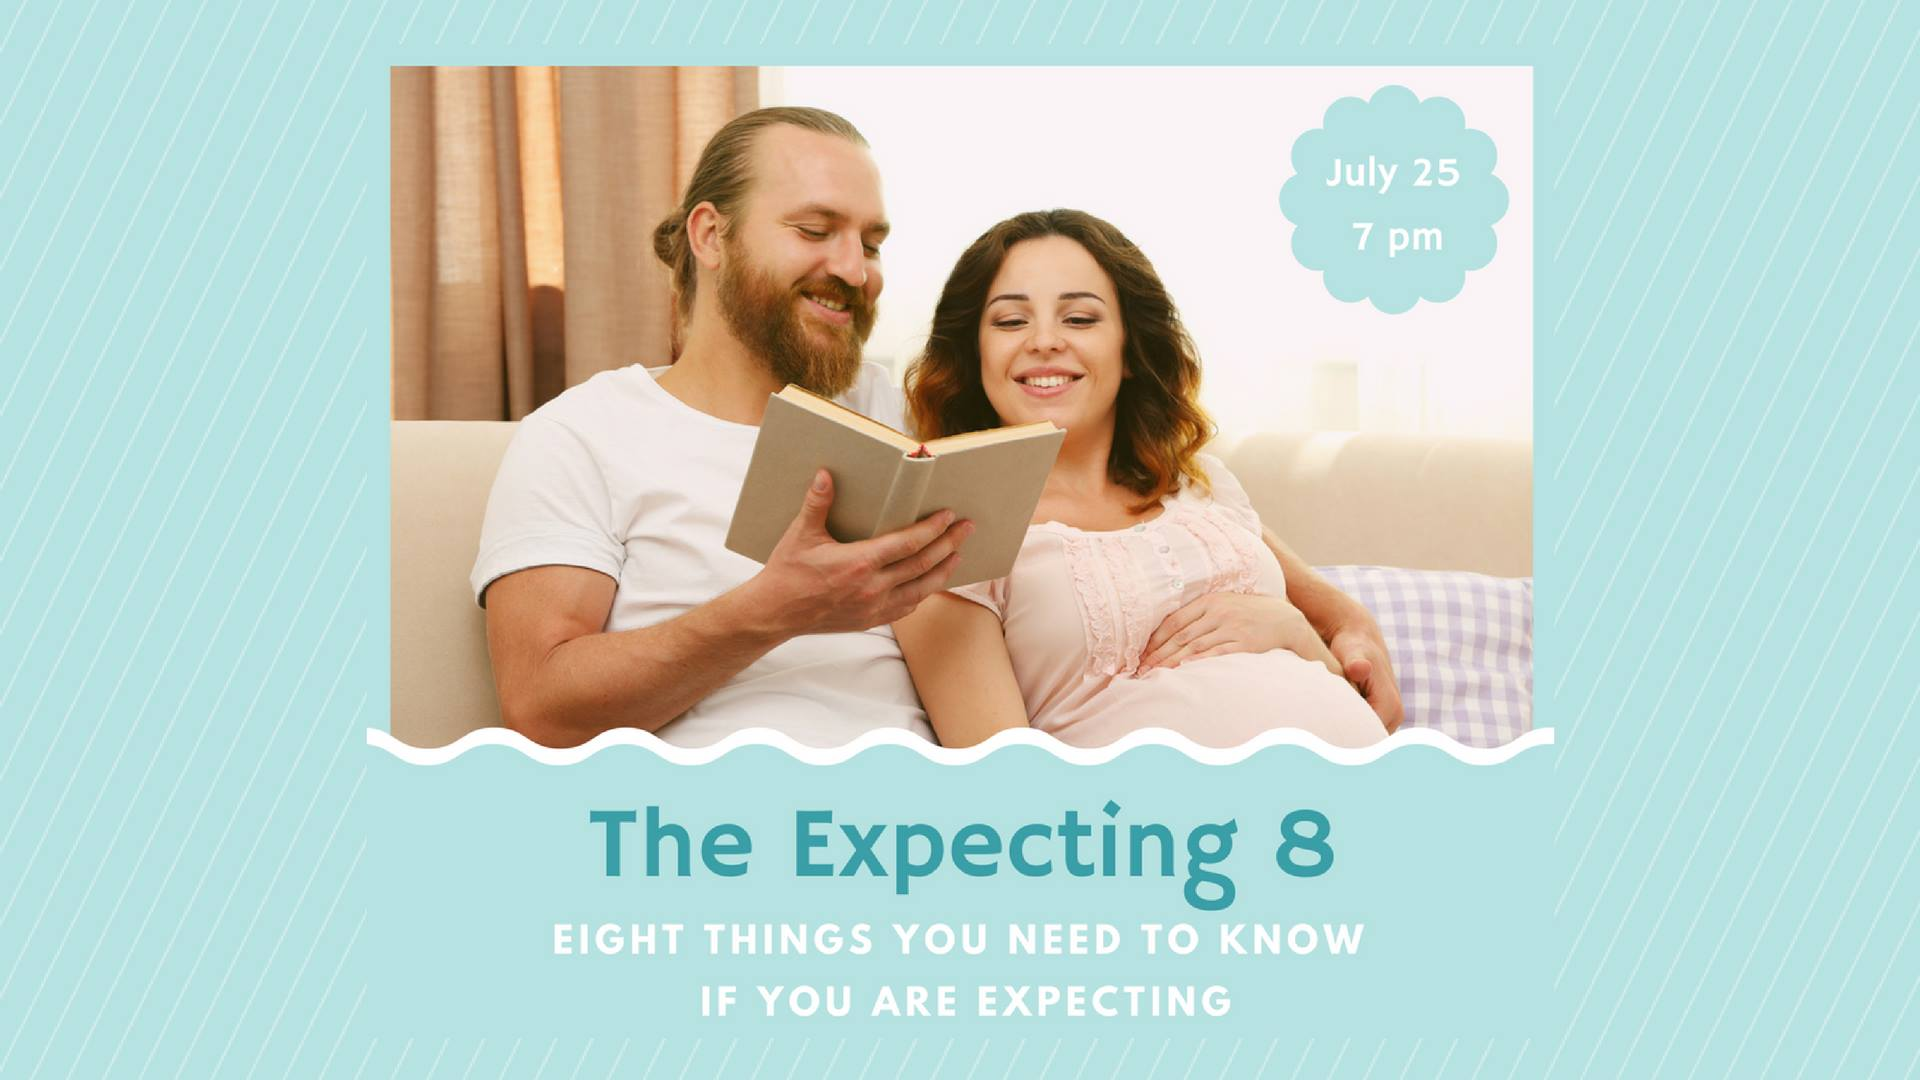 8 Things You Need To Know If You are Expecting